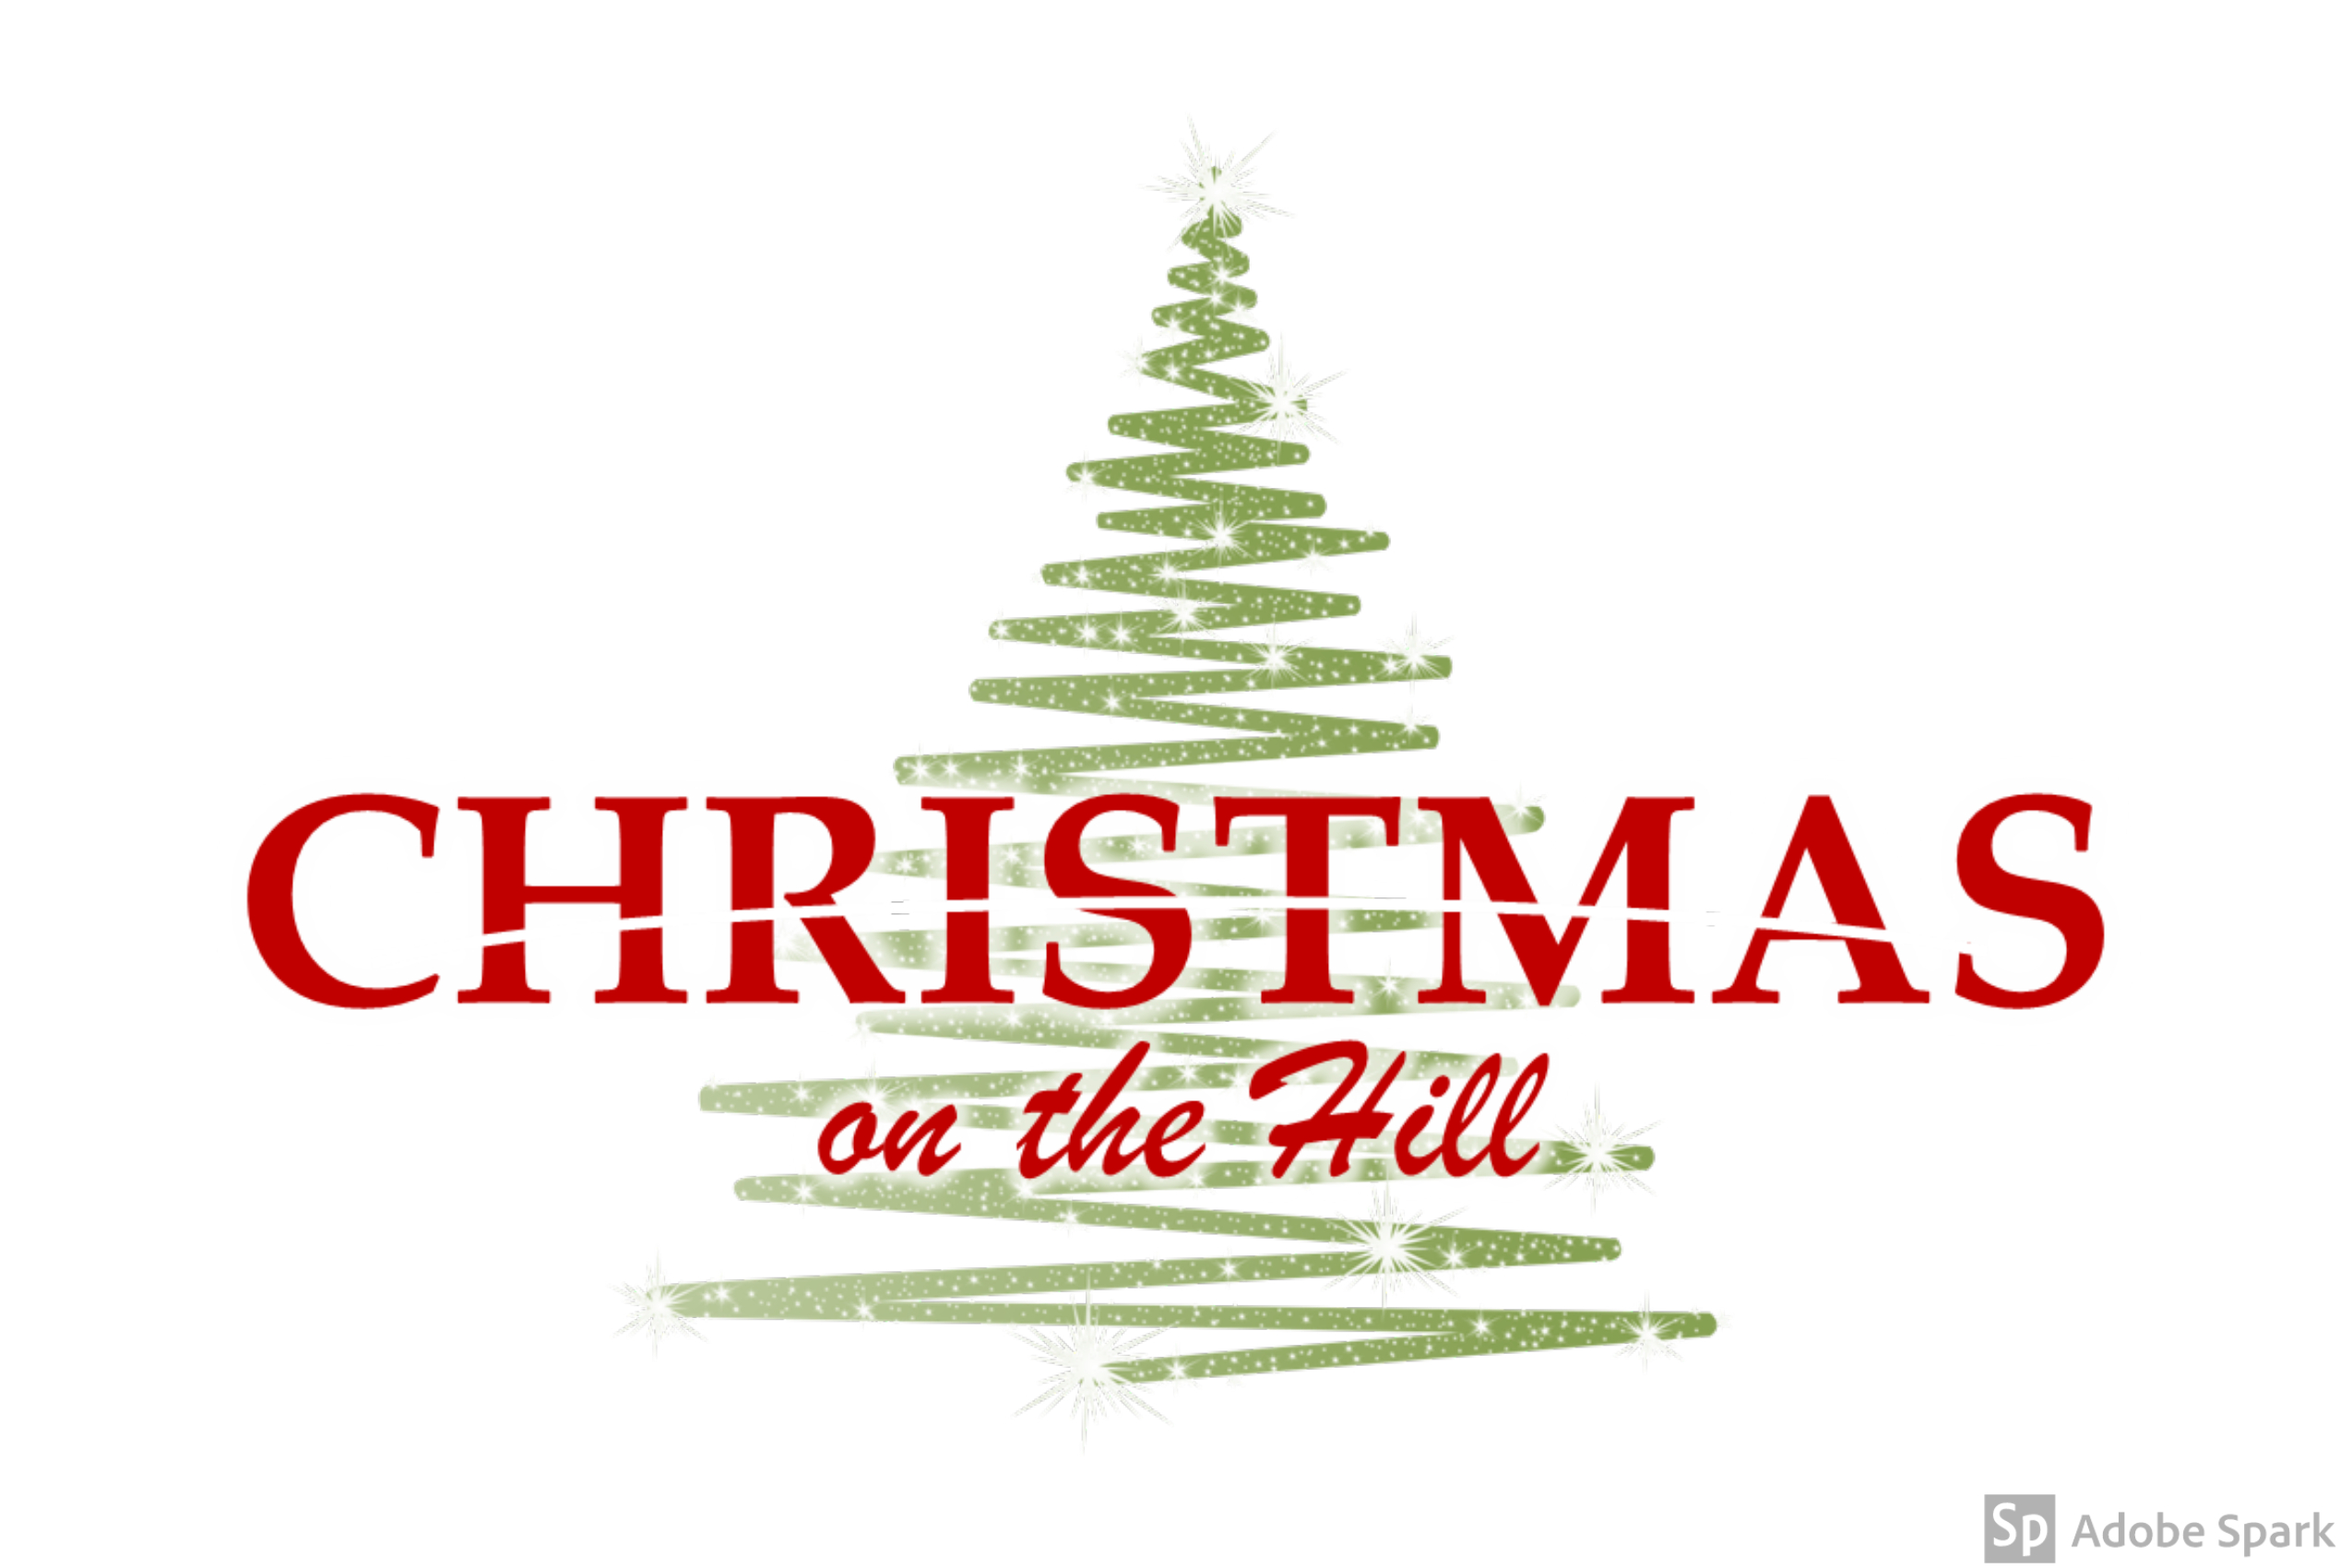 Christmas on the Hill Logo image